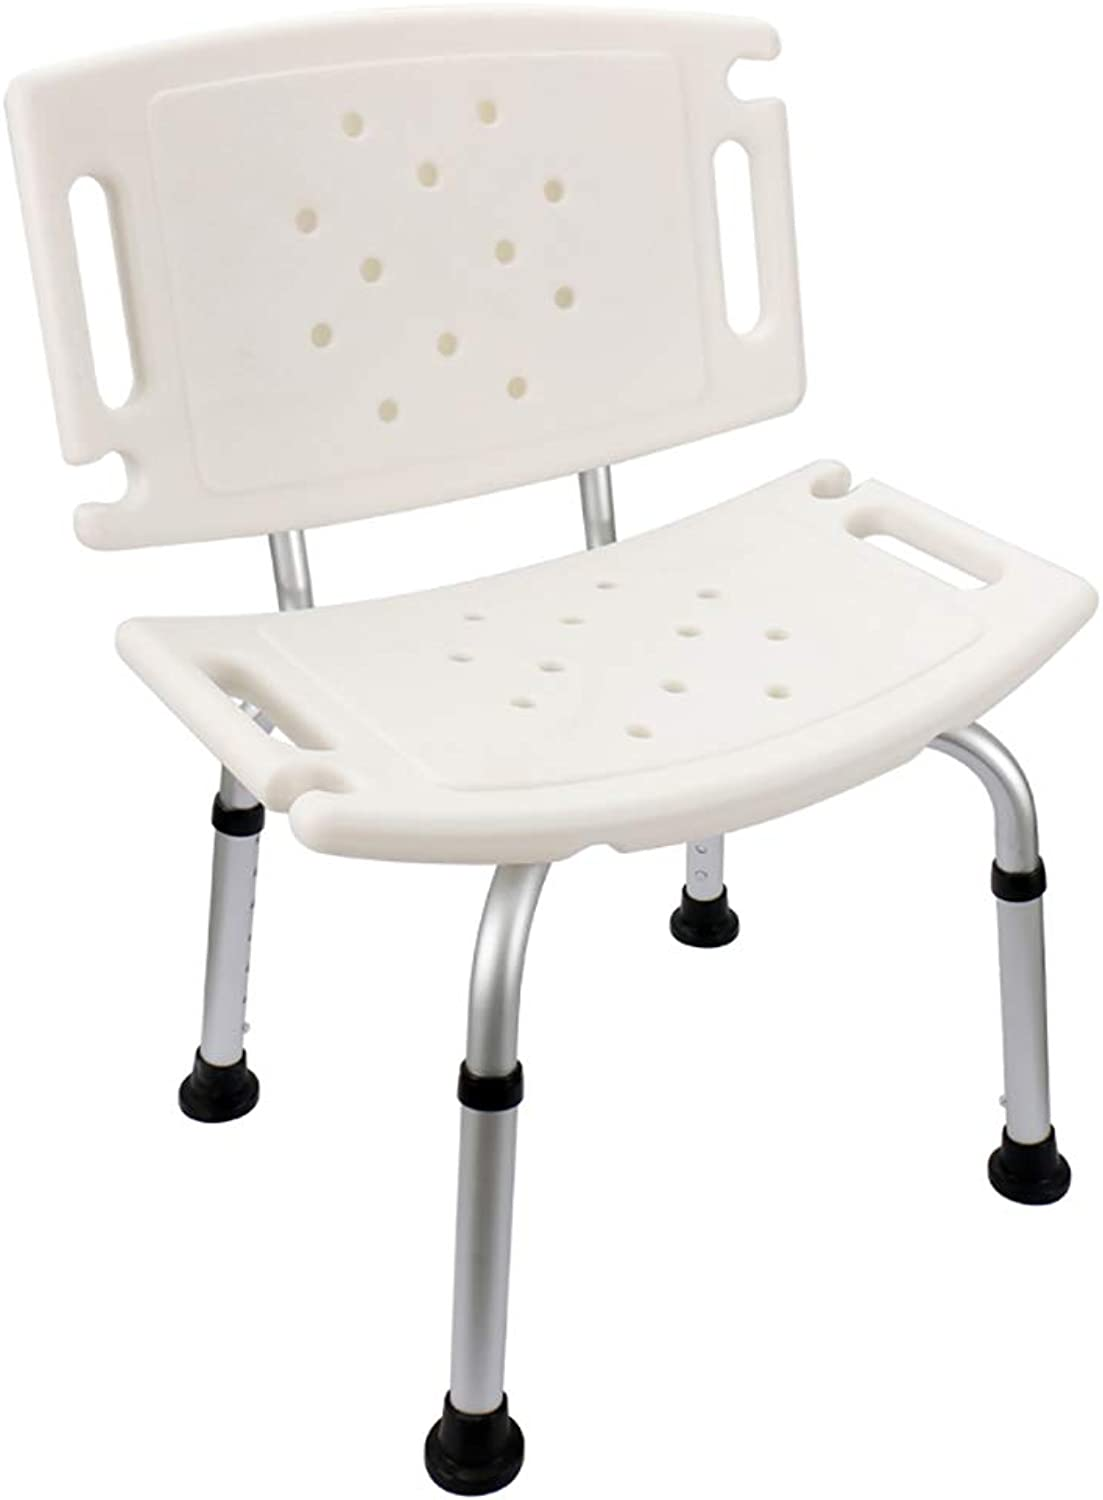 Baiyun flyin Mai ? Adjustable Shower Chair, Multi-function Non-slip Shower Bench, Pregnant Woman Shower Chair, With Armrests And Back, White